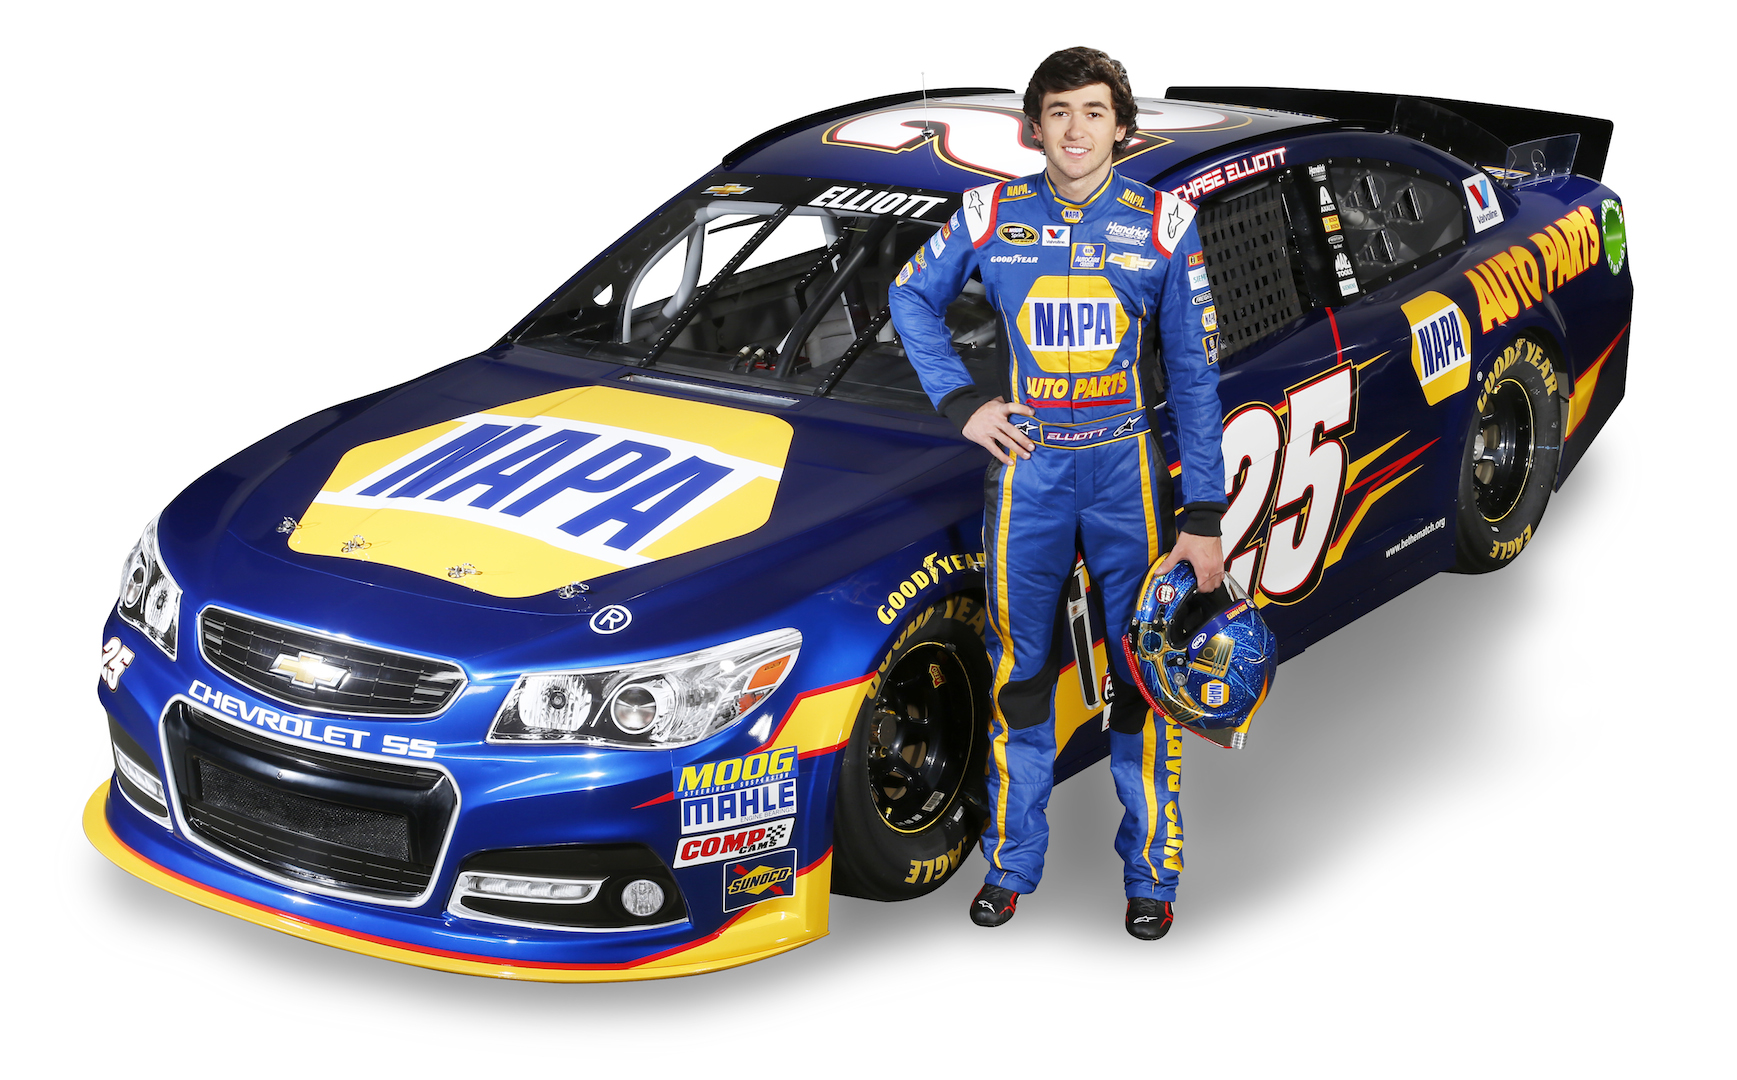 Chase Elliott will join Hendrick Motorsports as a full-time Sprint Cup driver beginning in 2016.